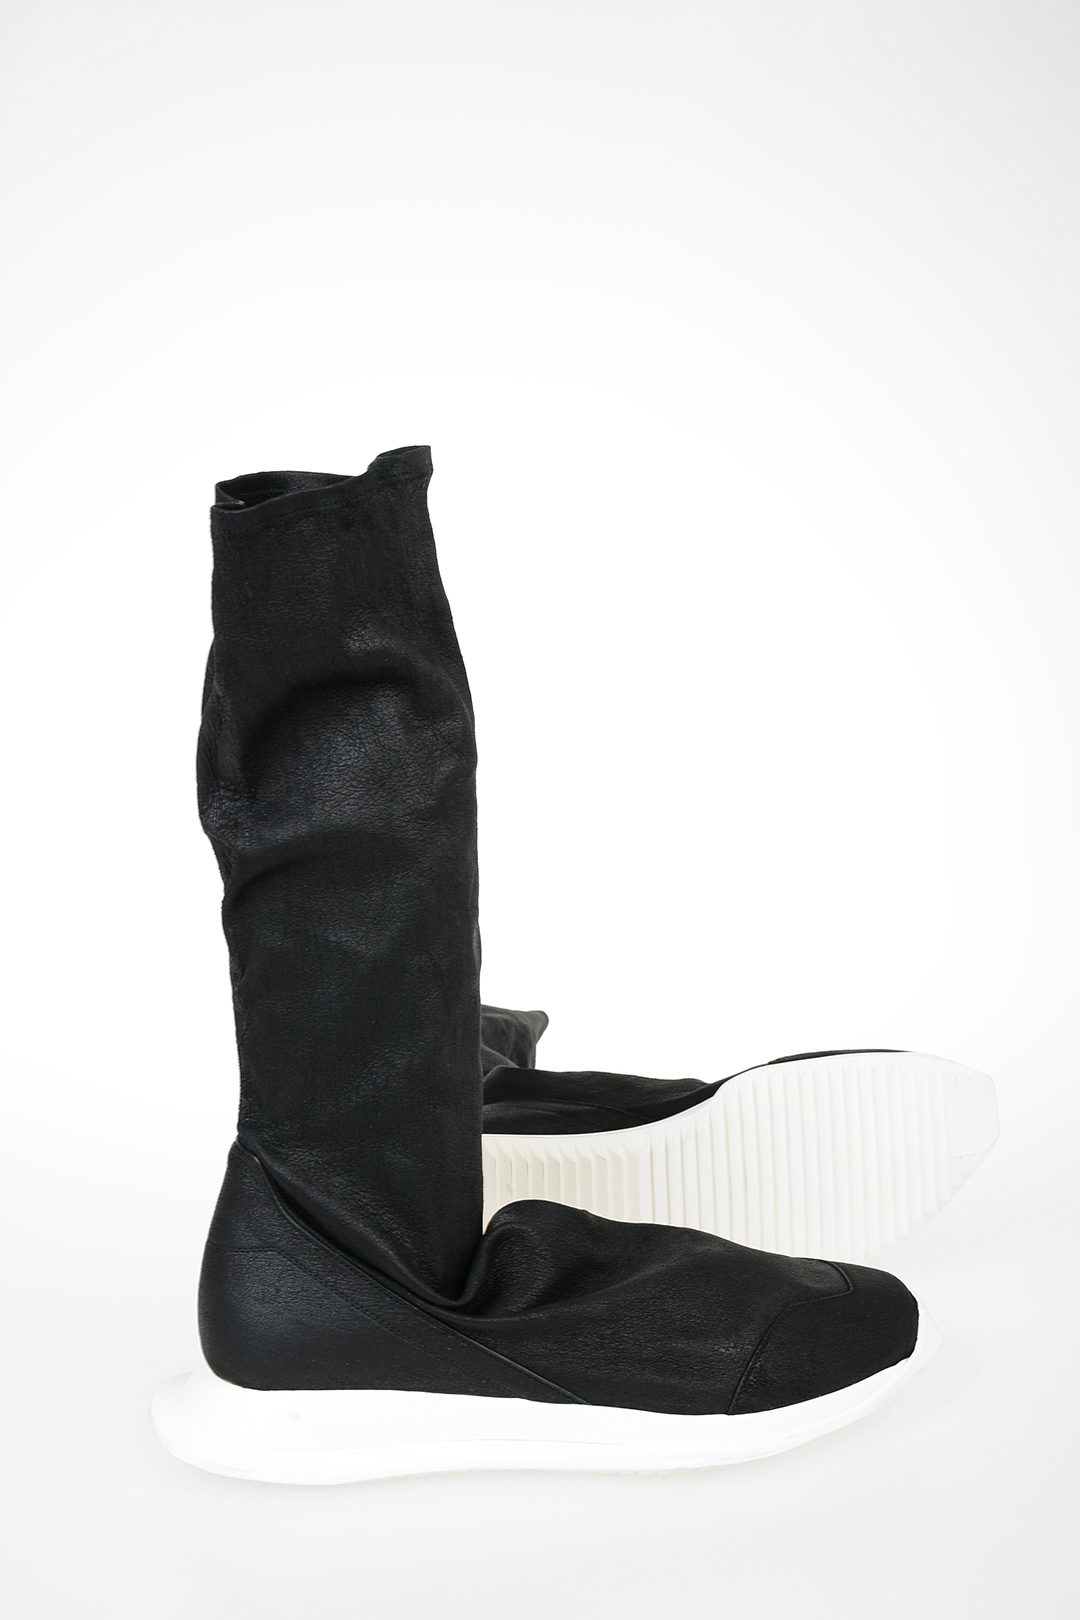 Rick Owens Leather and Fabric OBLIQUE